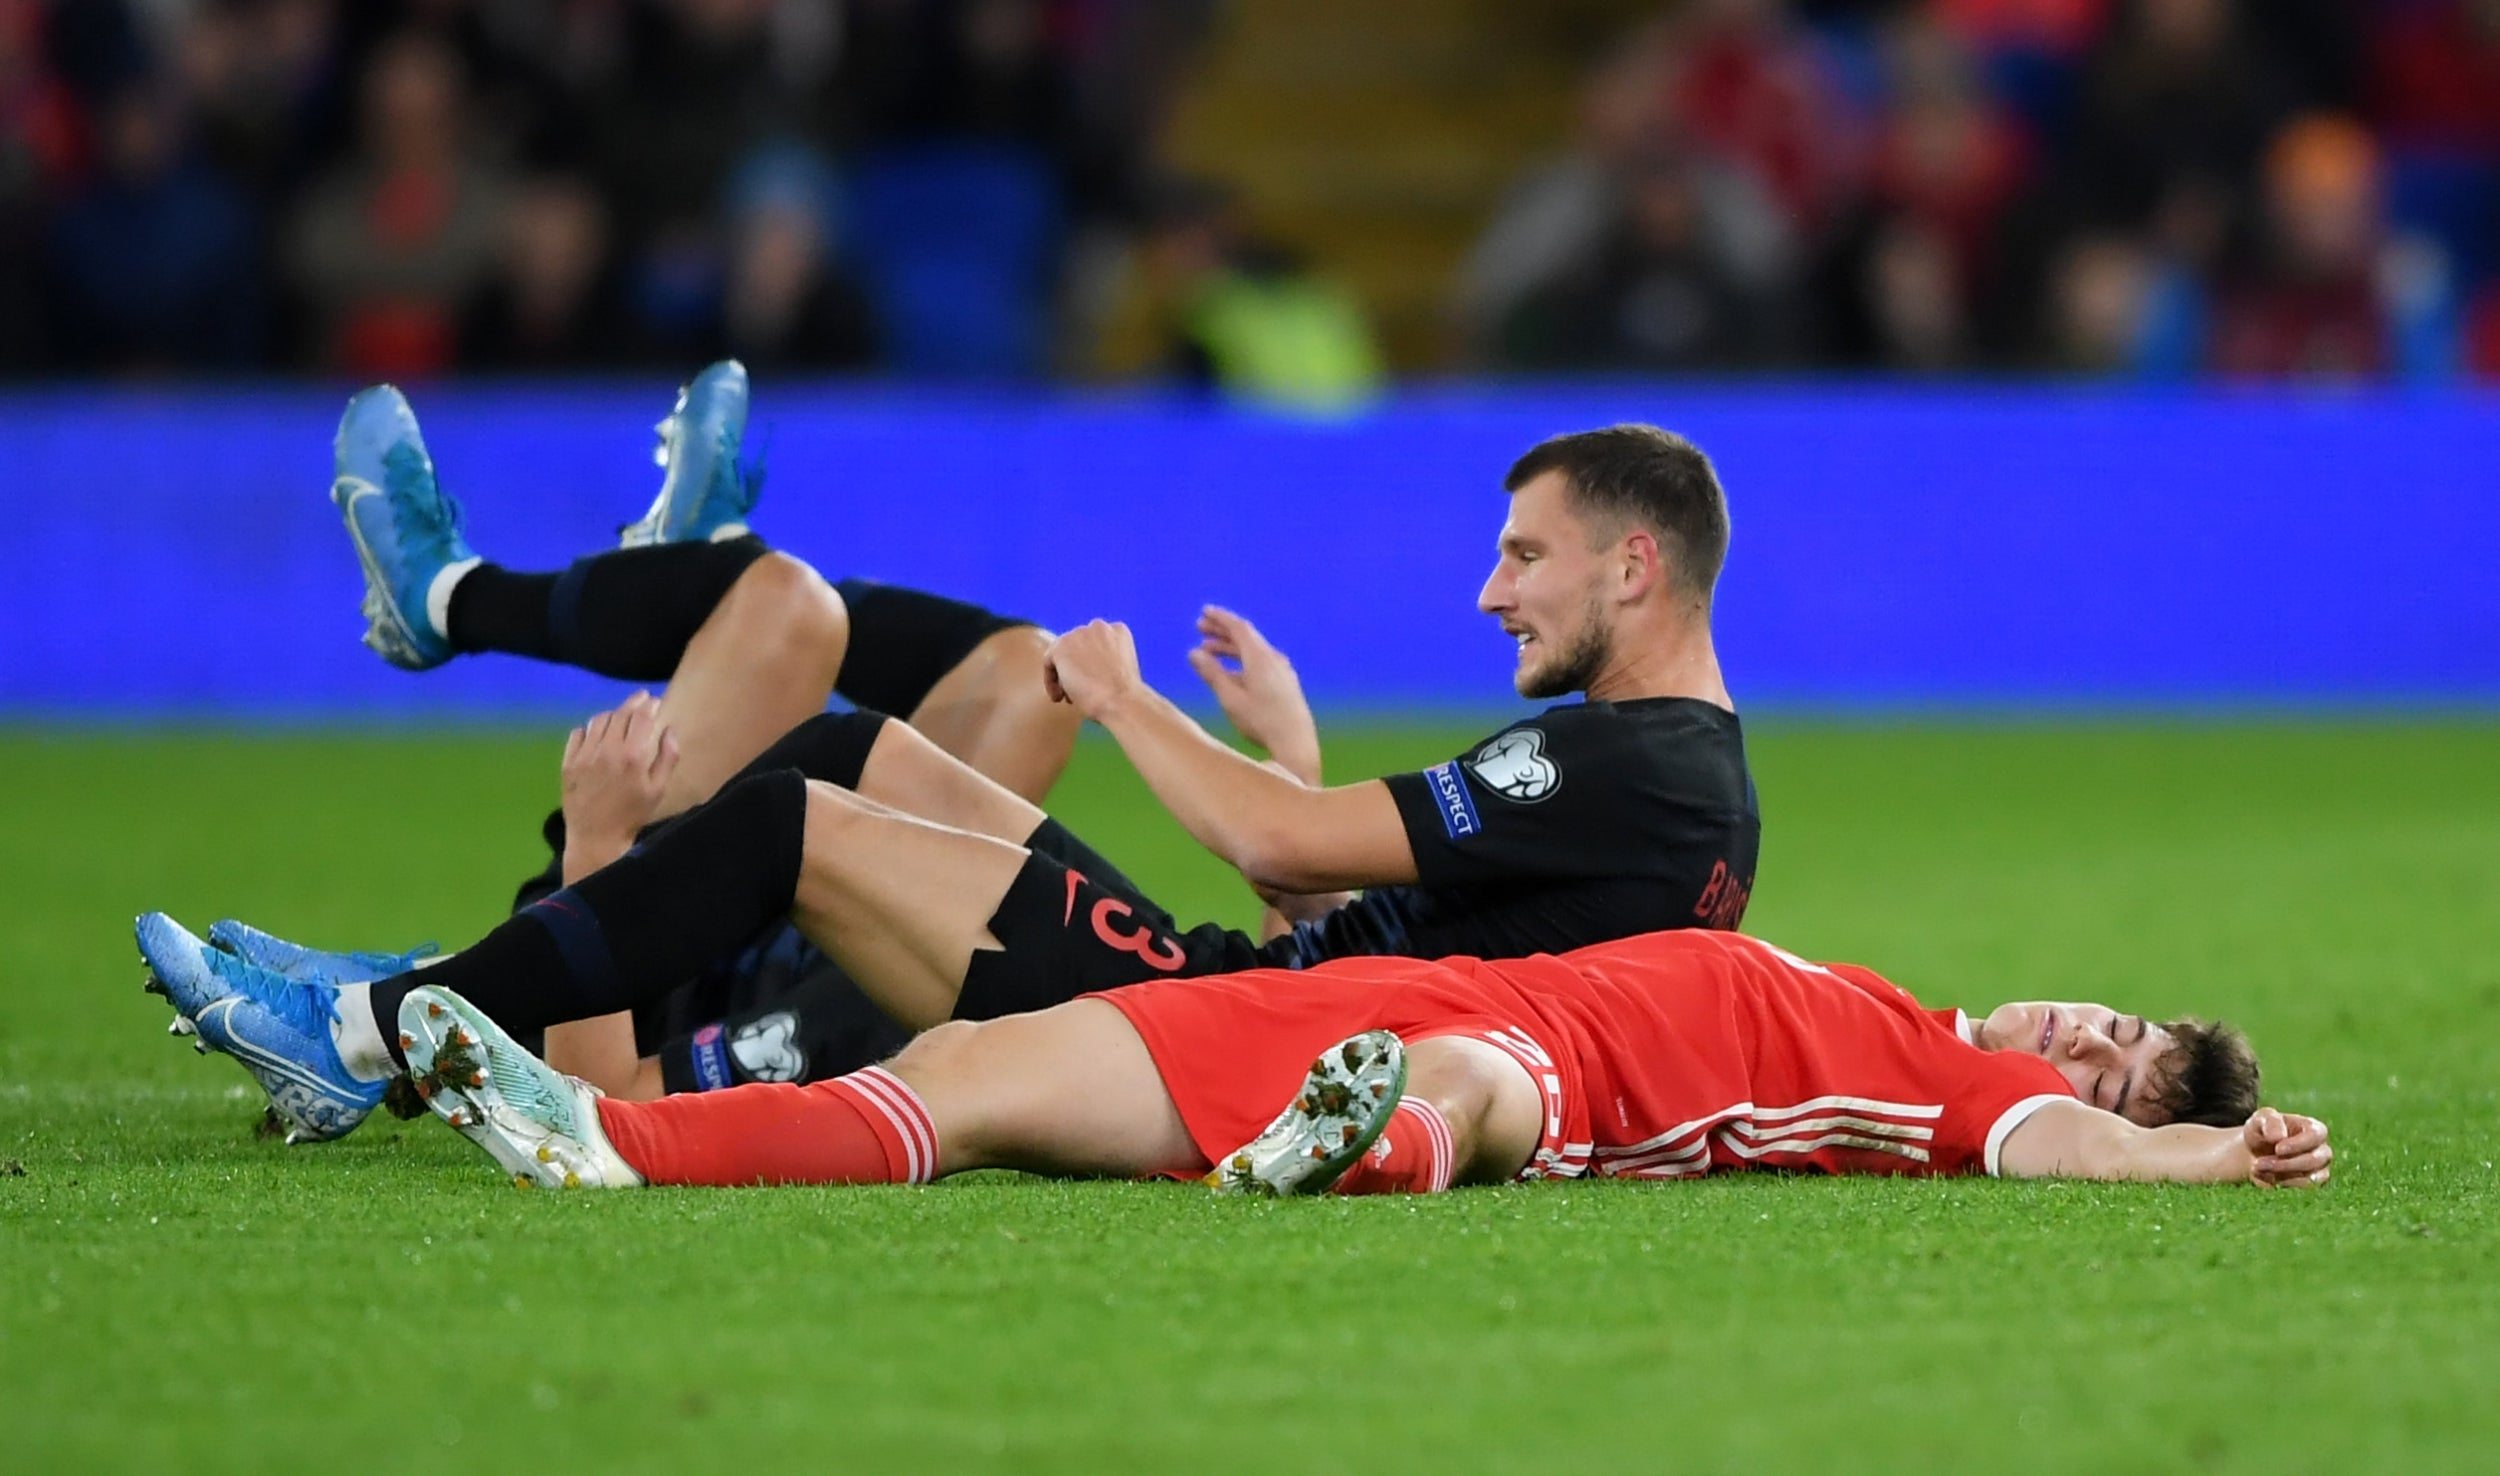 Manchester United star Daniel James denies being knocked out playing for Wales with Ryan Giggs claiming he was 'acting'